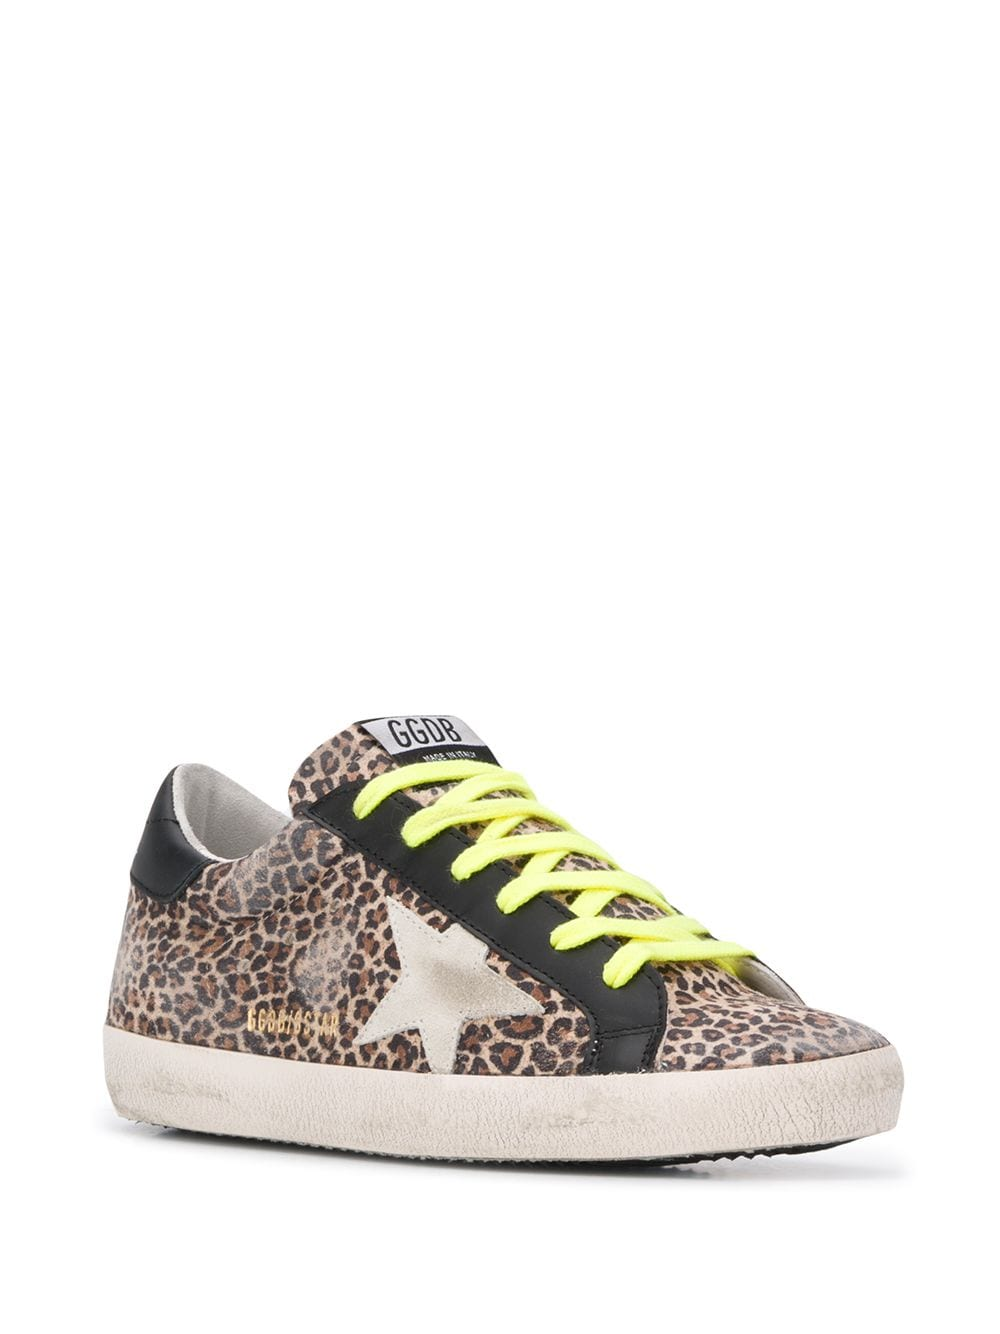 Superstar Leopard-Print Sneakers 3/4